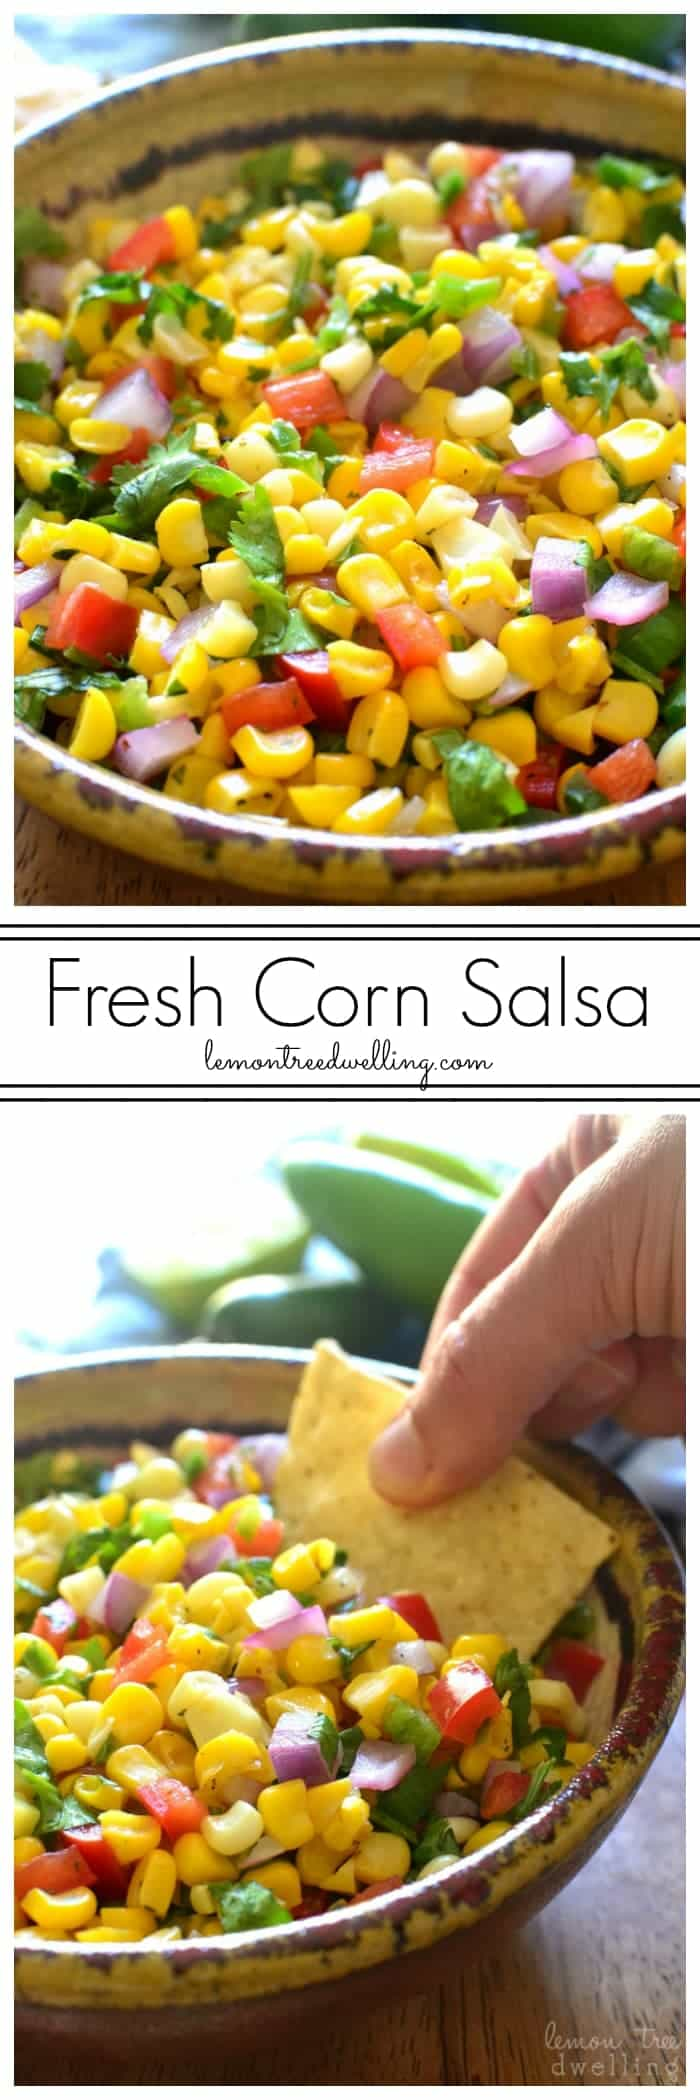 Fresh Corn Salsa - made with just 7 simple ingredients and perfect for dipping, topping, or eating by the spoonful!